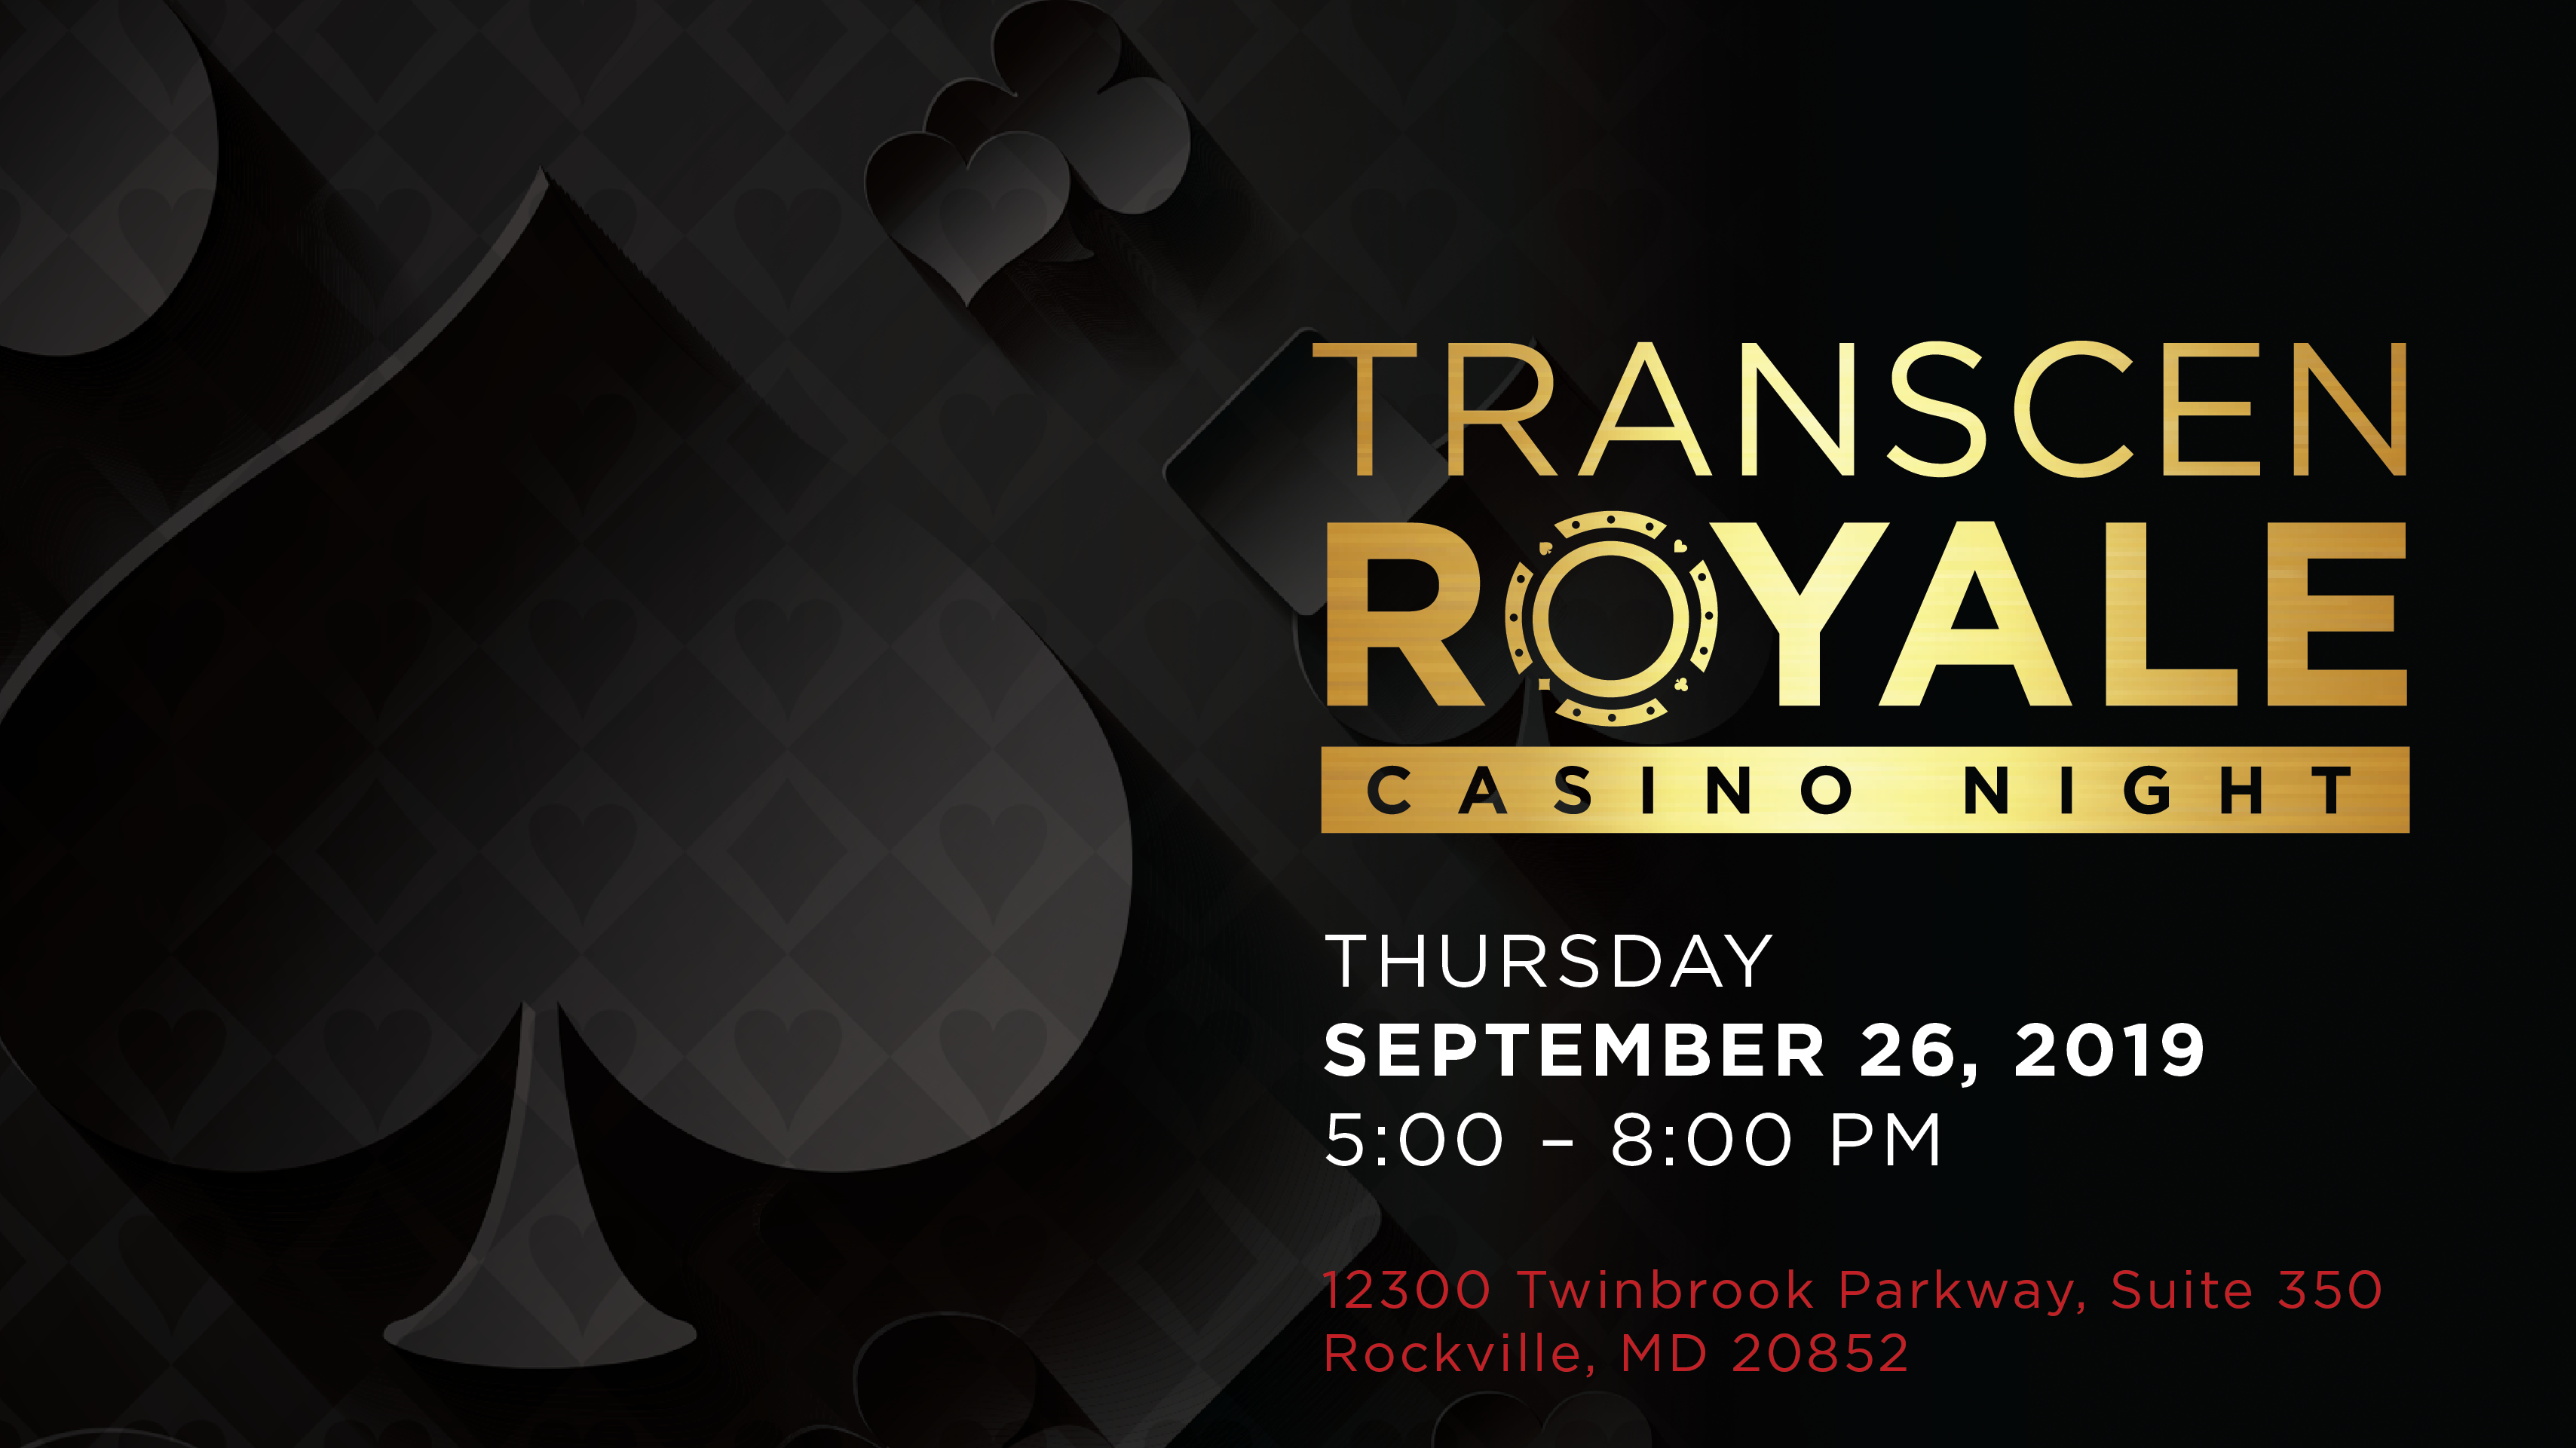 TransCen Royale Casino Night